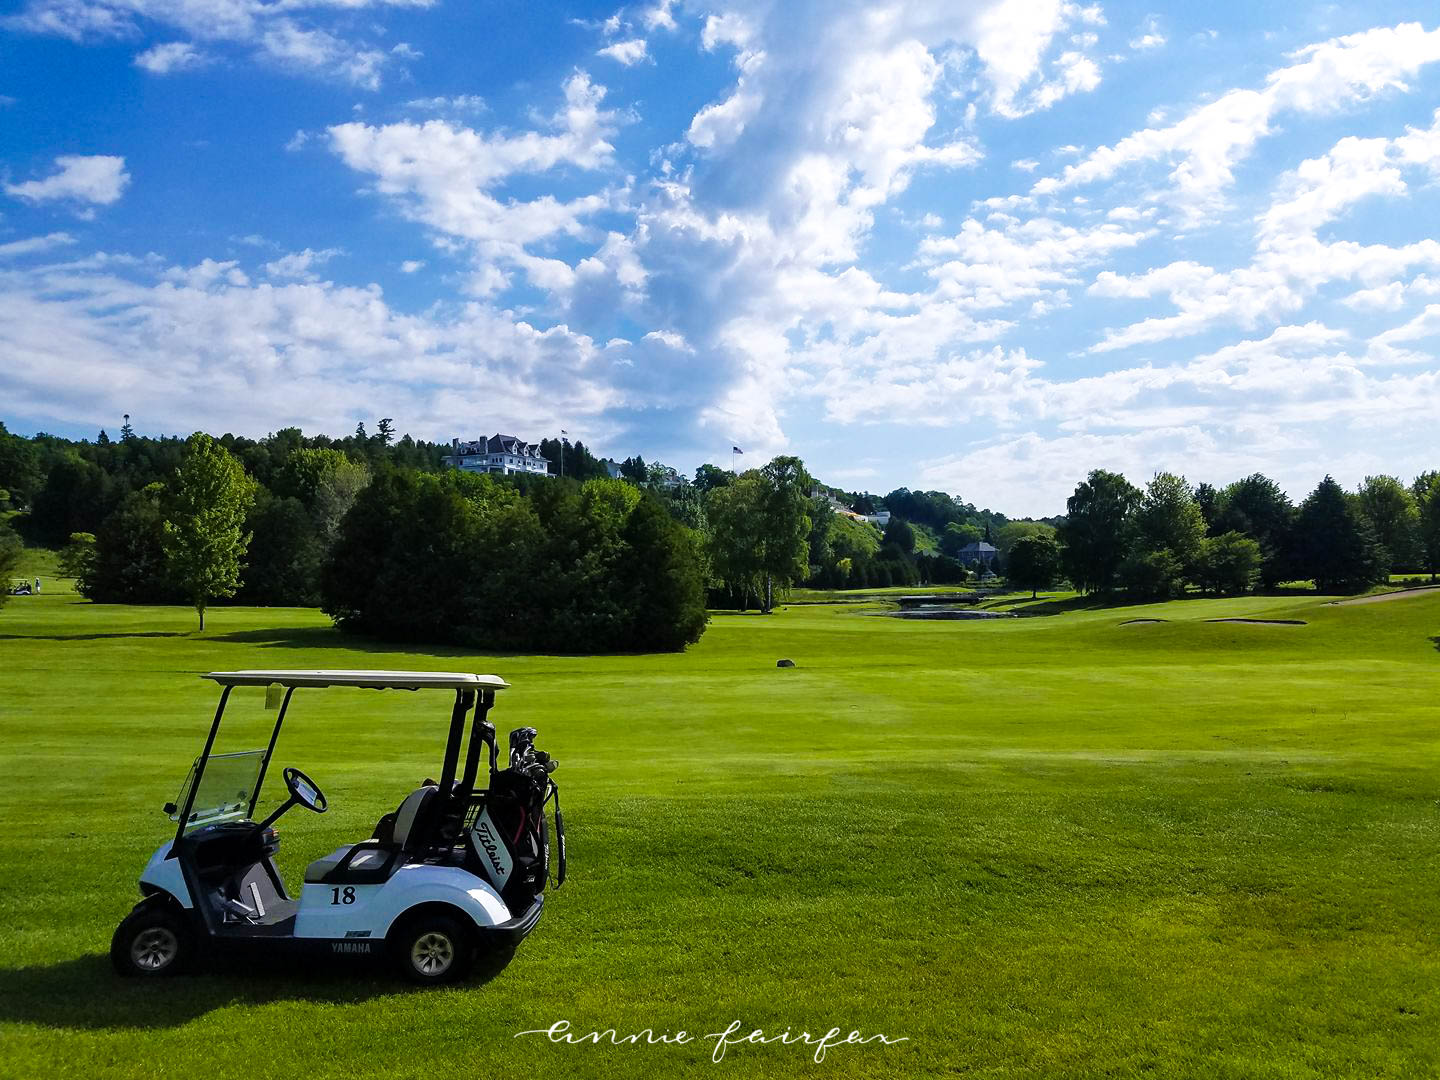 Golfing on the Jewel Golf Course Grand Hotel Mackinac Island Michigan Titleist Golf